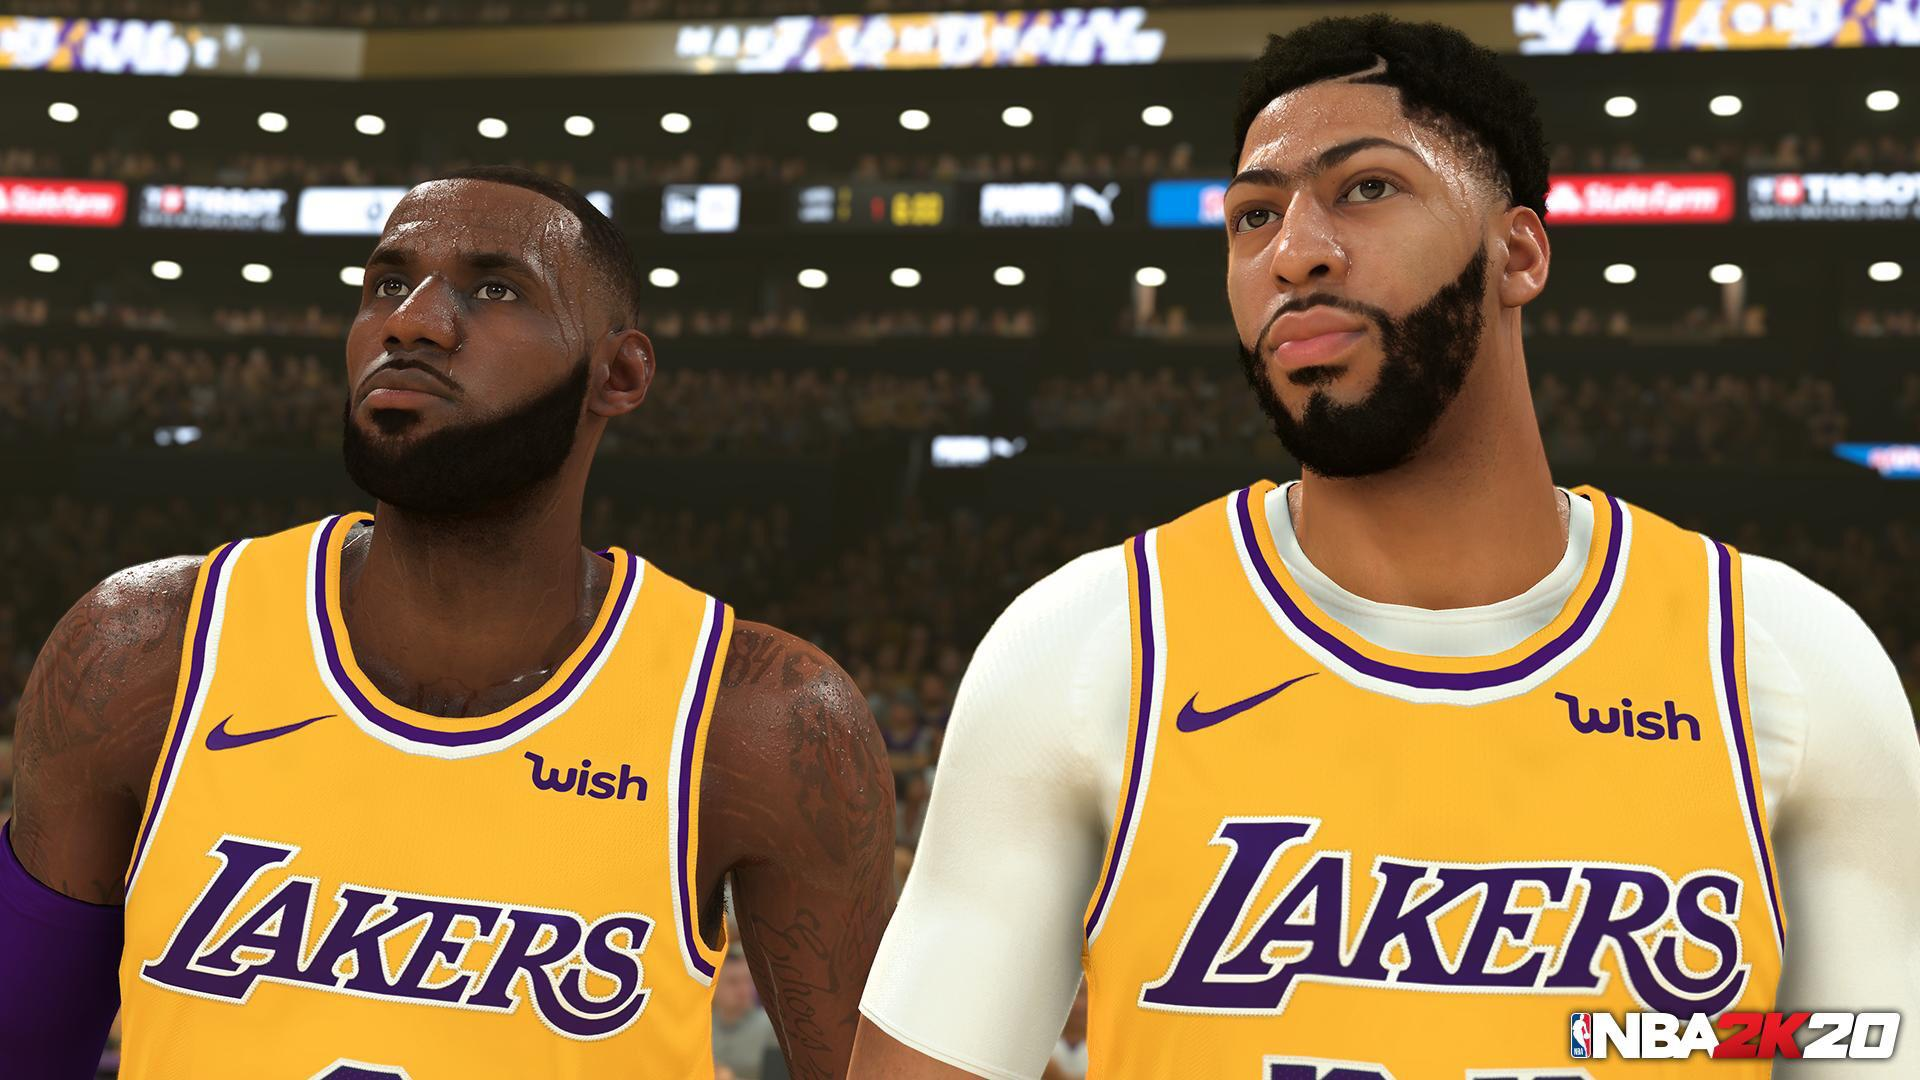 NBA 2K20 LeBron James Anthony Davis